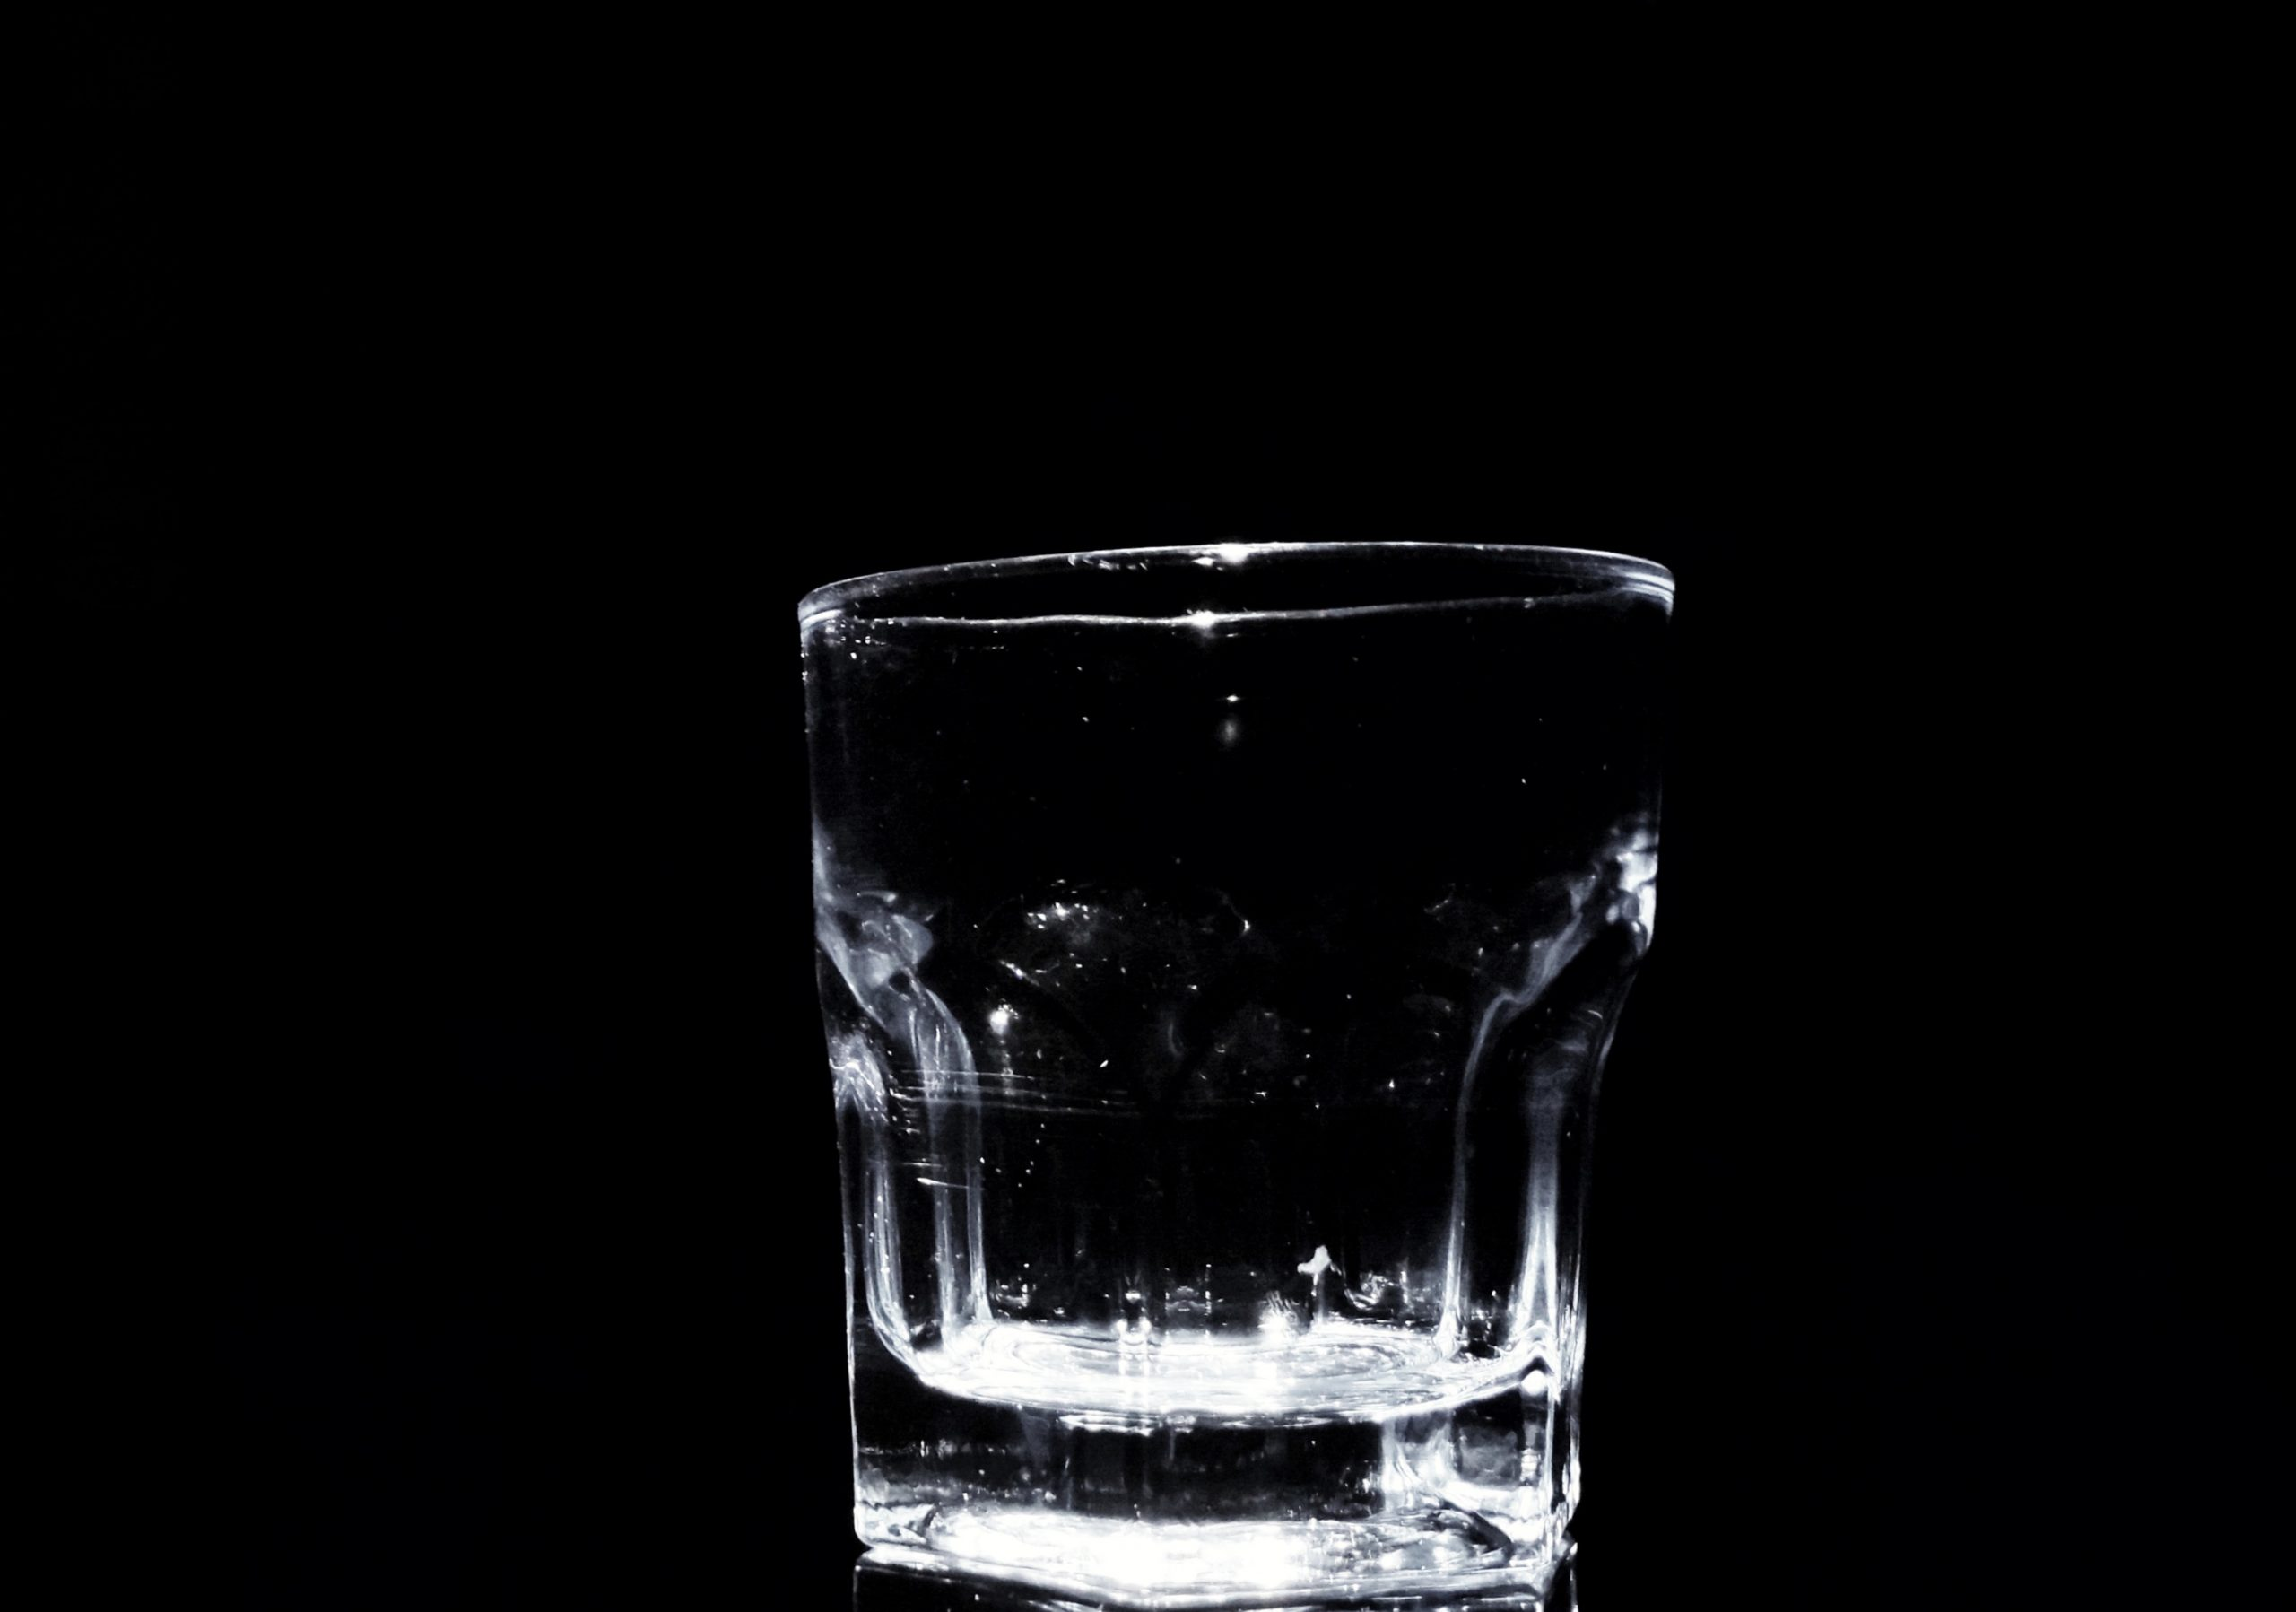 Whiskey glass with black background